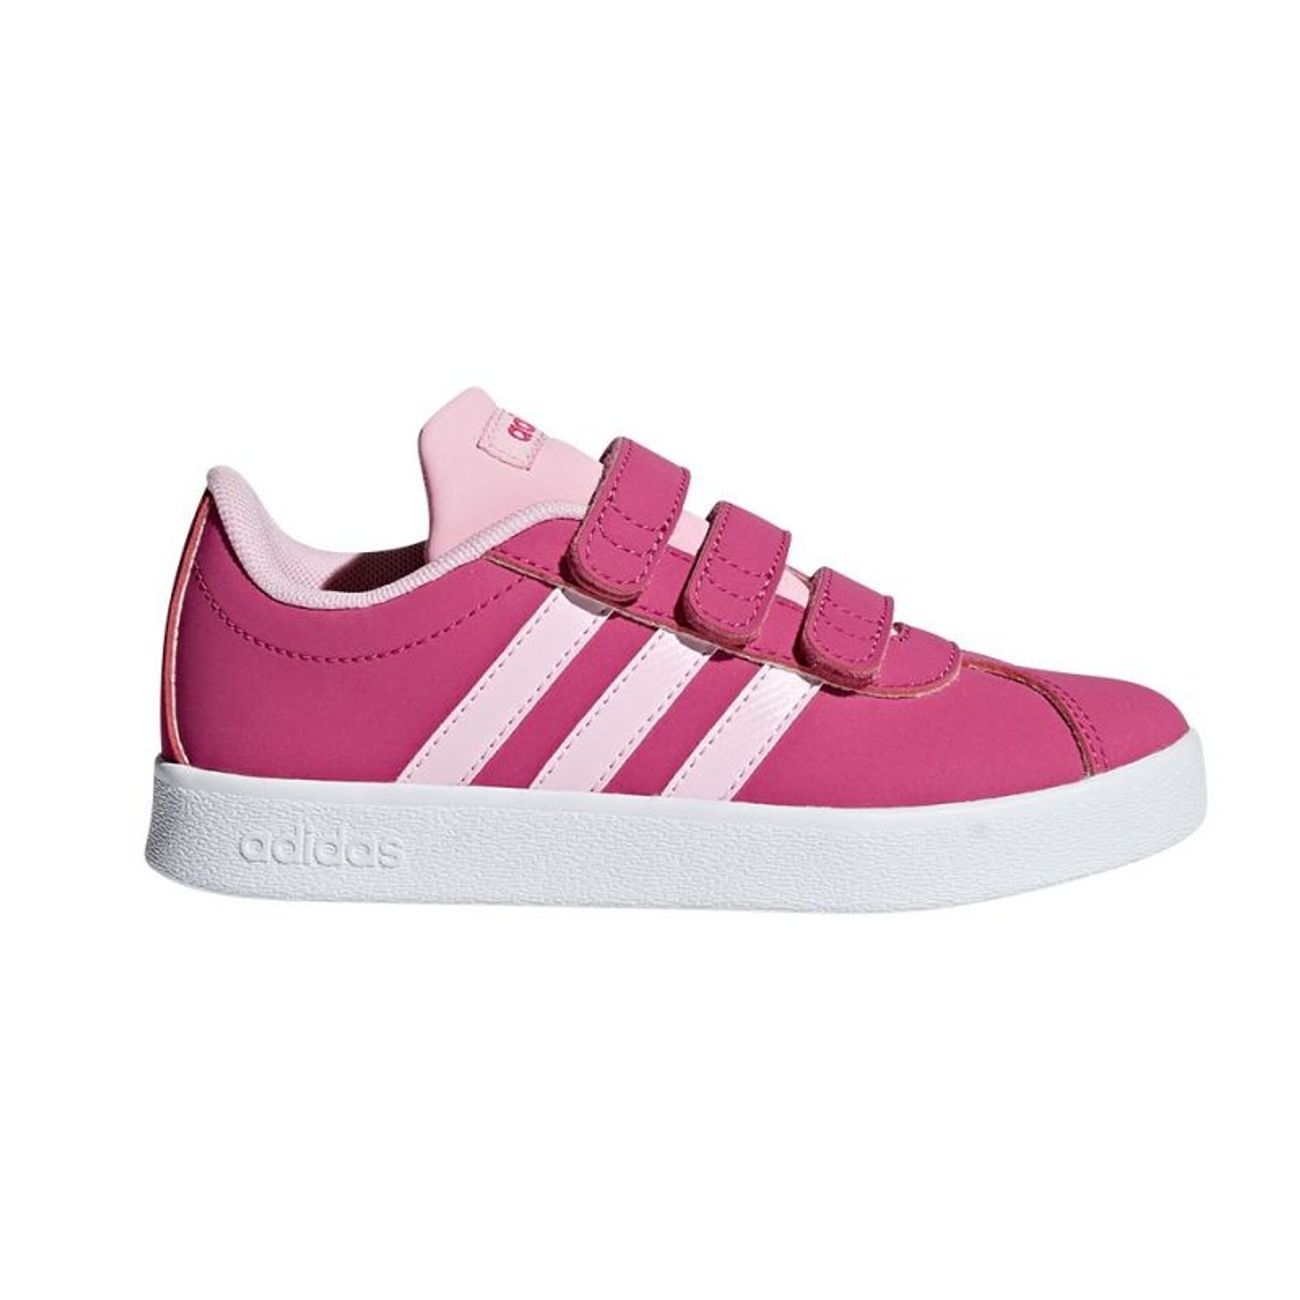 Adulte 2 Padel Junior Rose Cmf Femme F36394 Adidas 0 Vl Court JTc3l1FK